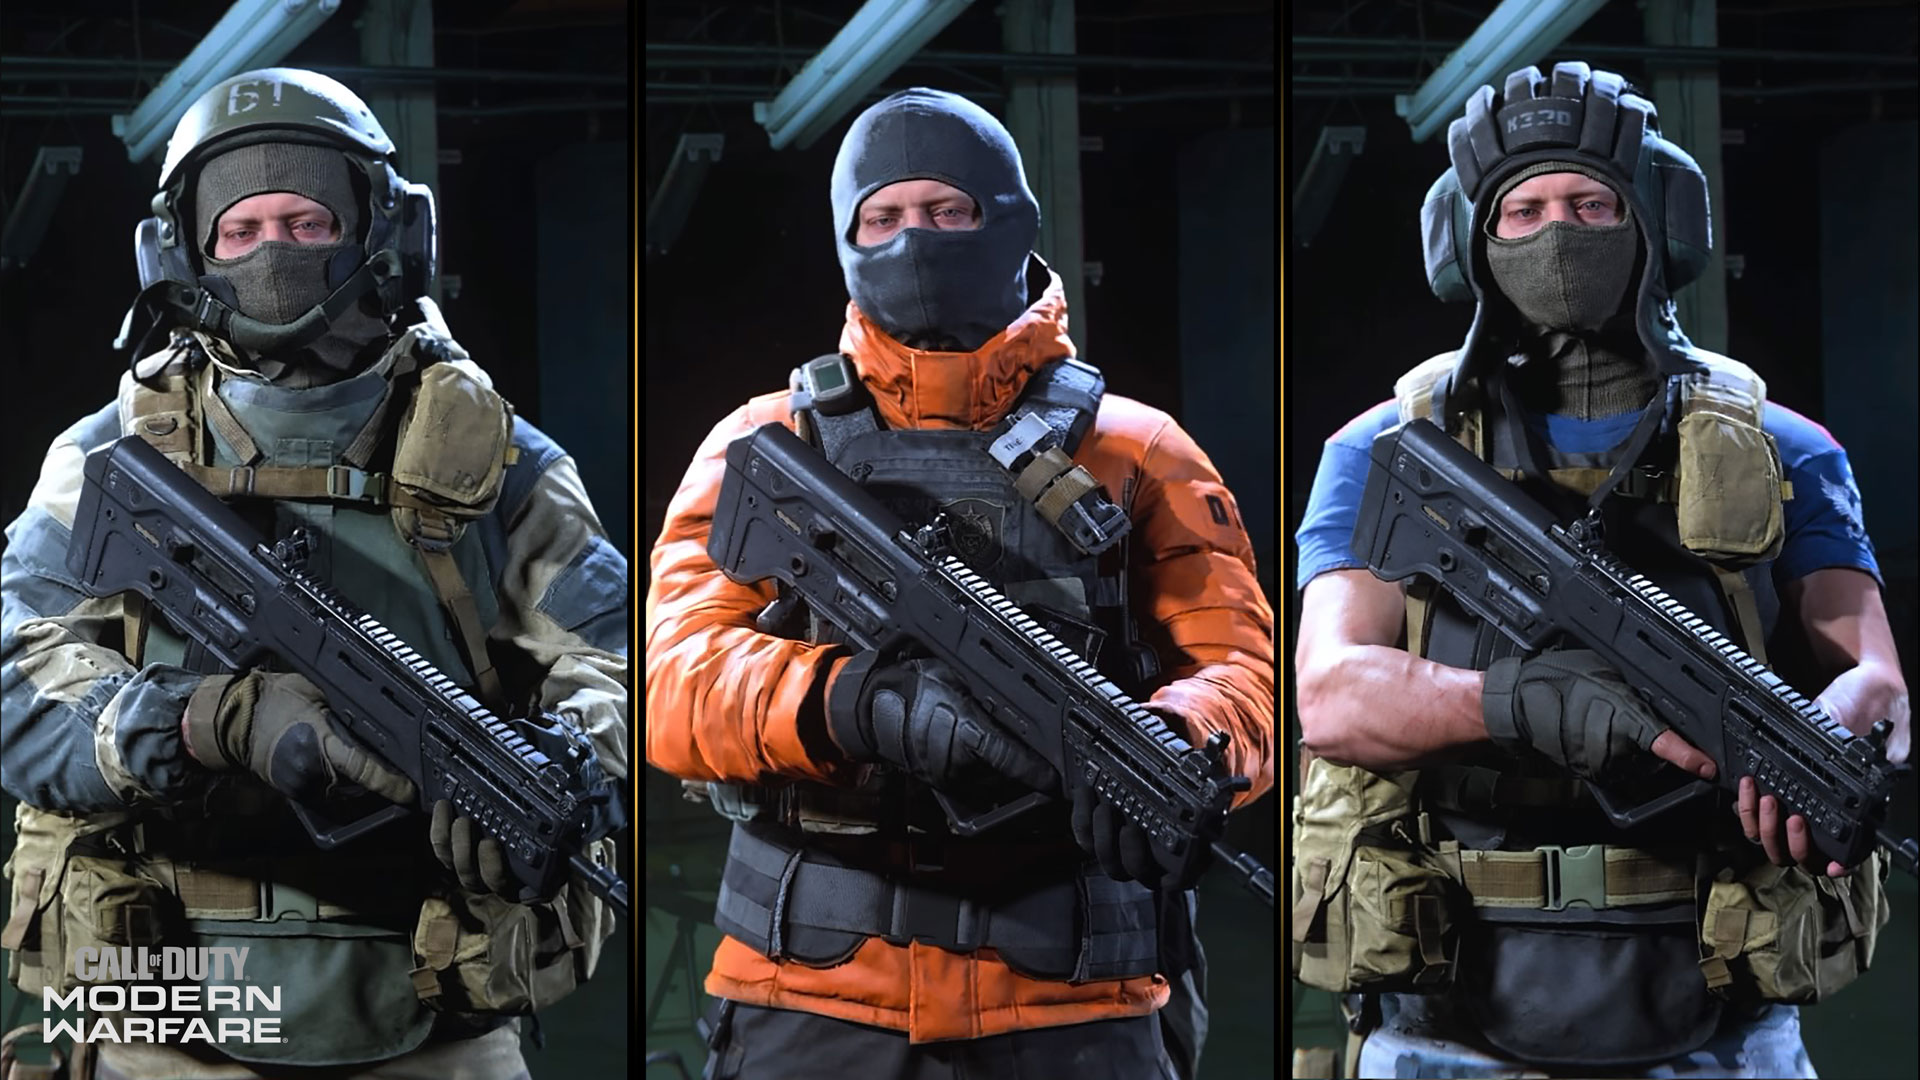 The Allegiance Operators of Call of Duty®: Modern Warfare® bring Mace to Battle - Image 1